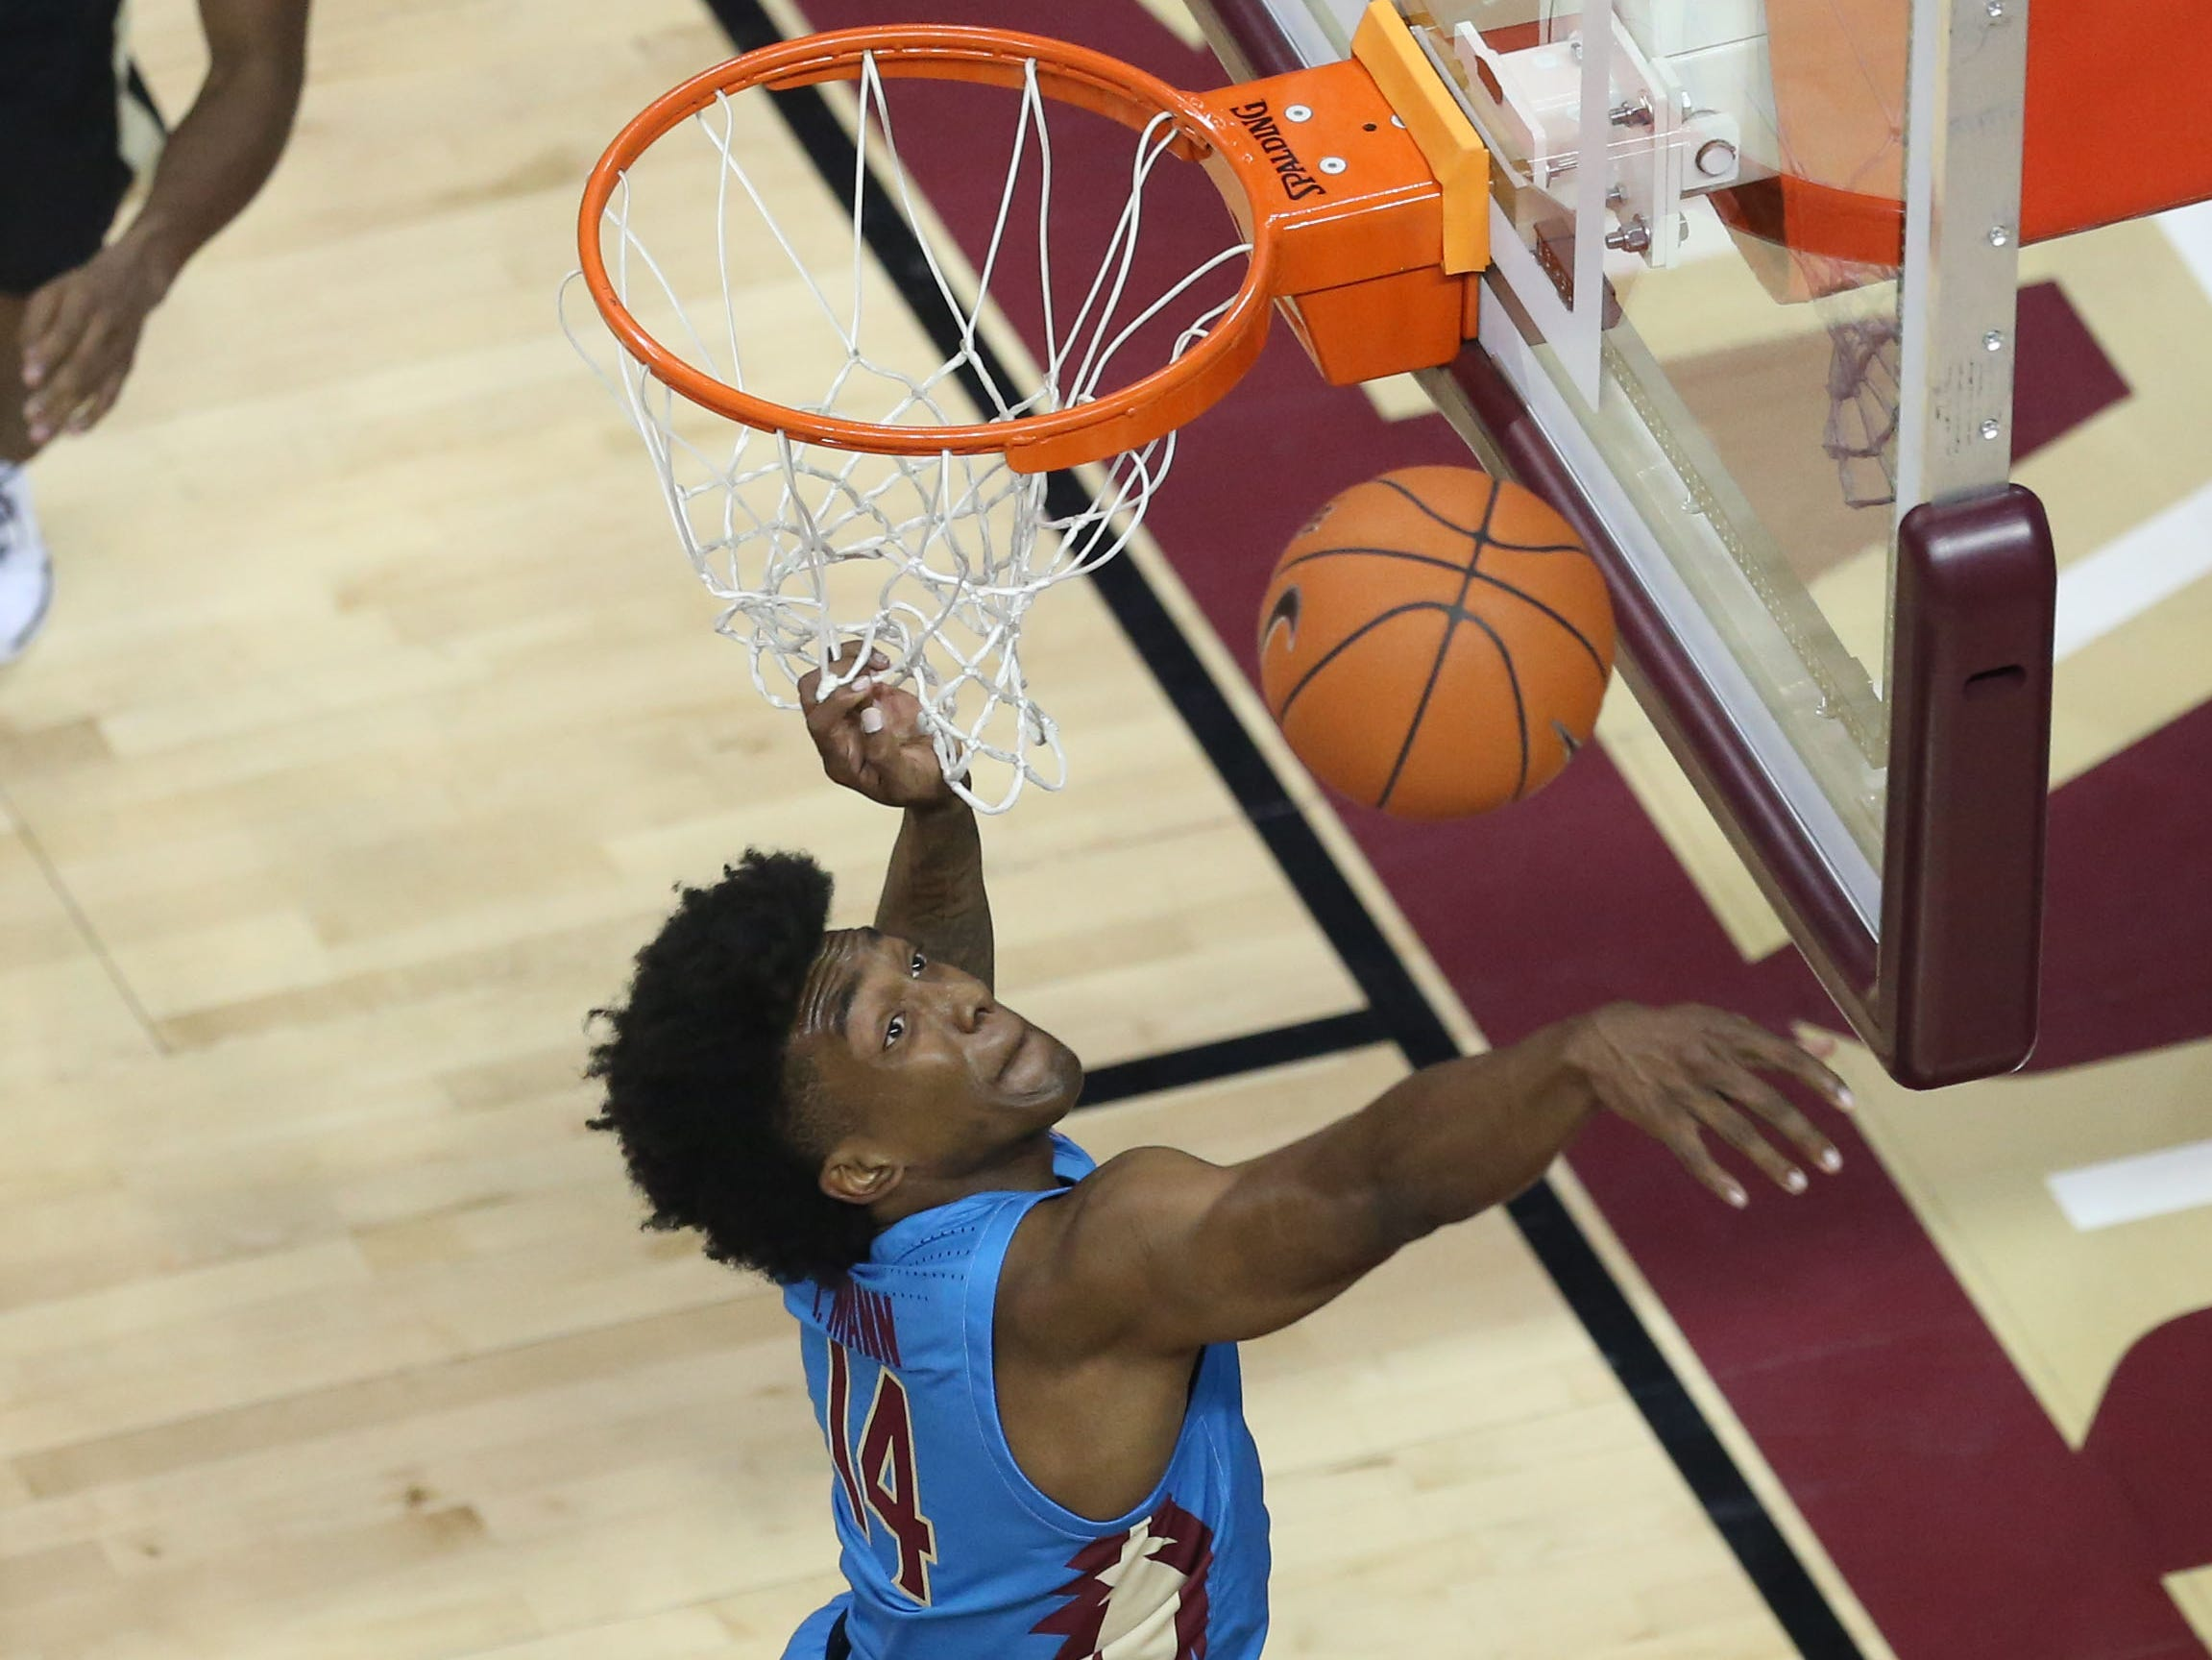 Florida State Seminoles guard Terance Mann (14) blocks a shot attempted by  Purdue Boilermaker as the Florida State Seminoles host the Purdue Boilermakers at the Tucker Civic Center, Wednesday, Nov. 28, 2018. The Seminoles beat the Boilermakers 73 - 72 with a last second shot.